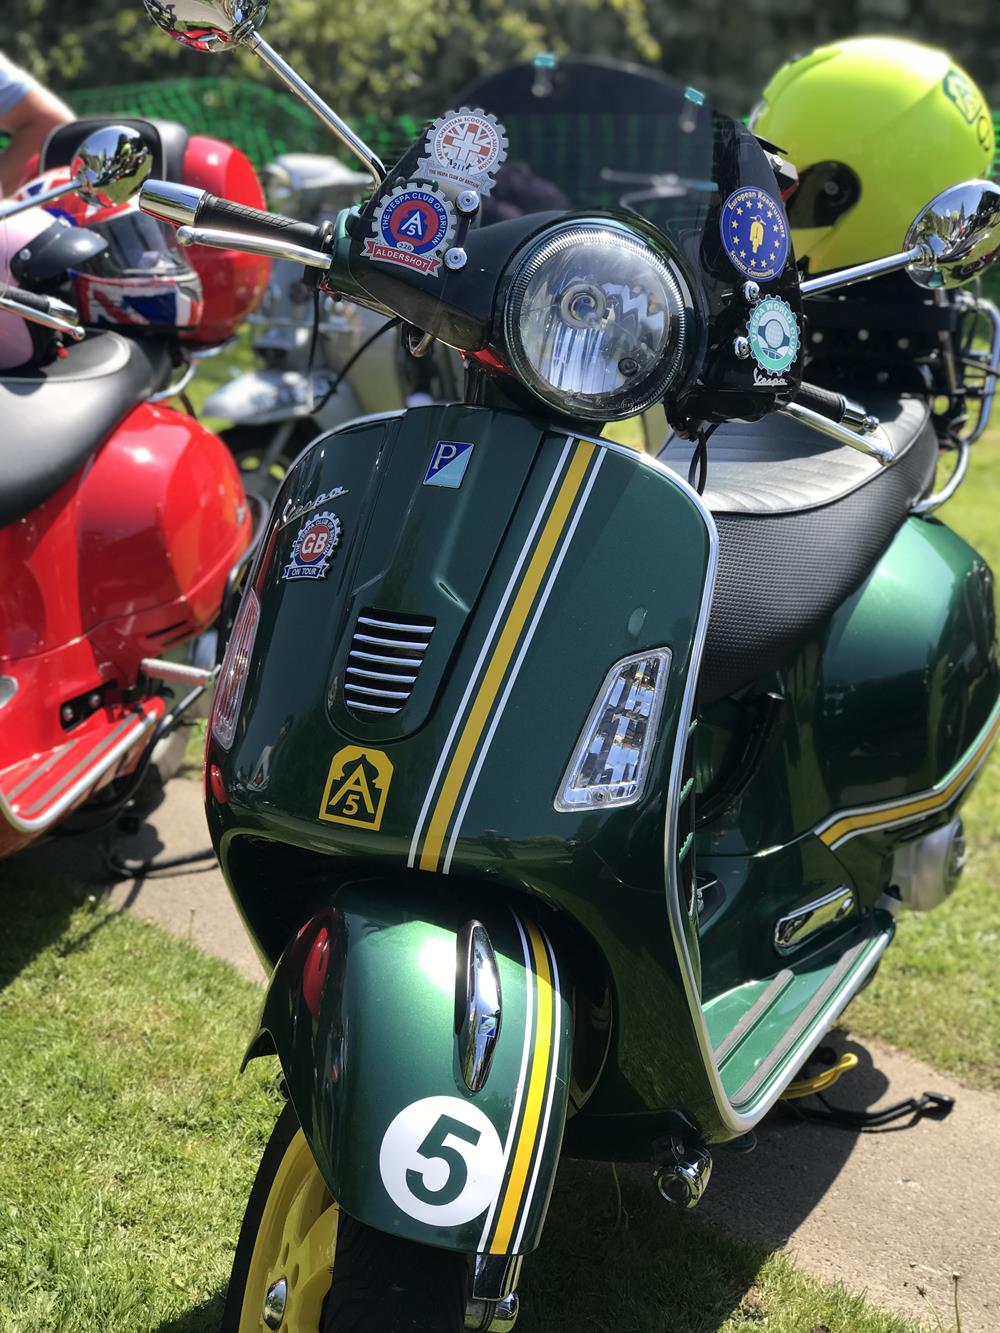 Green Vespa GTS scooter with yellow stripes and A5 scooter club stickers